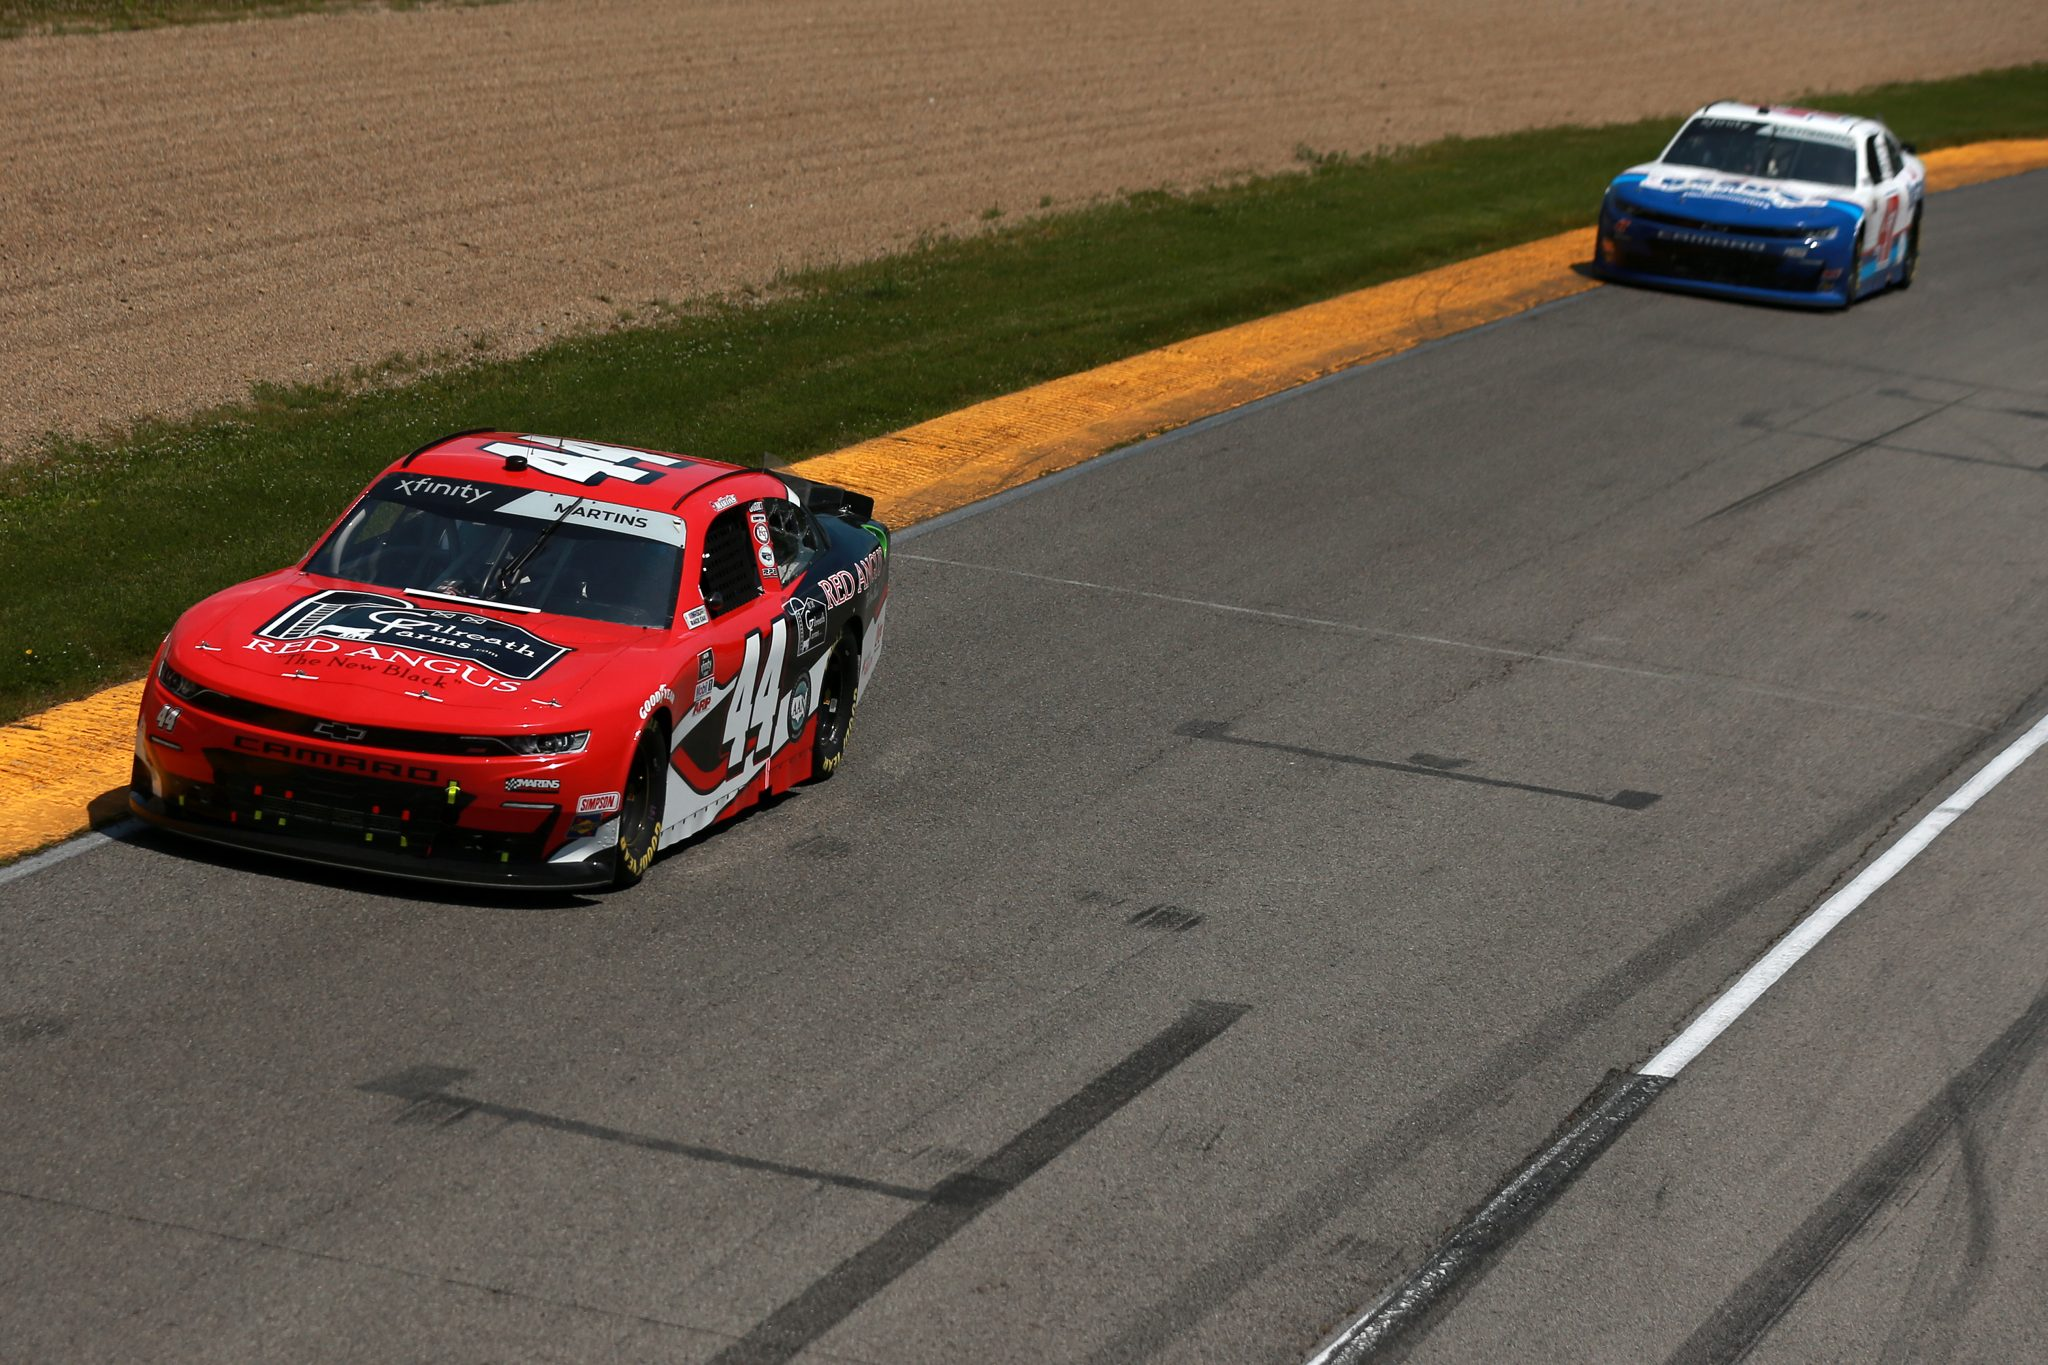 LEXINGTON, OHIO - JUNE 05: Tommy Joe Martins, driver of the #44 Gilreath Farms Red Angus Chevrolet, drives during the NASCAR Xfinity Series B&L Transport 170 at Mid-Ohio Sports Car Course on June 05, 2021 in Lexington, Ohio. (Photo by Sean Gardner/Getty Images) | Getty Images